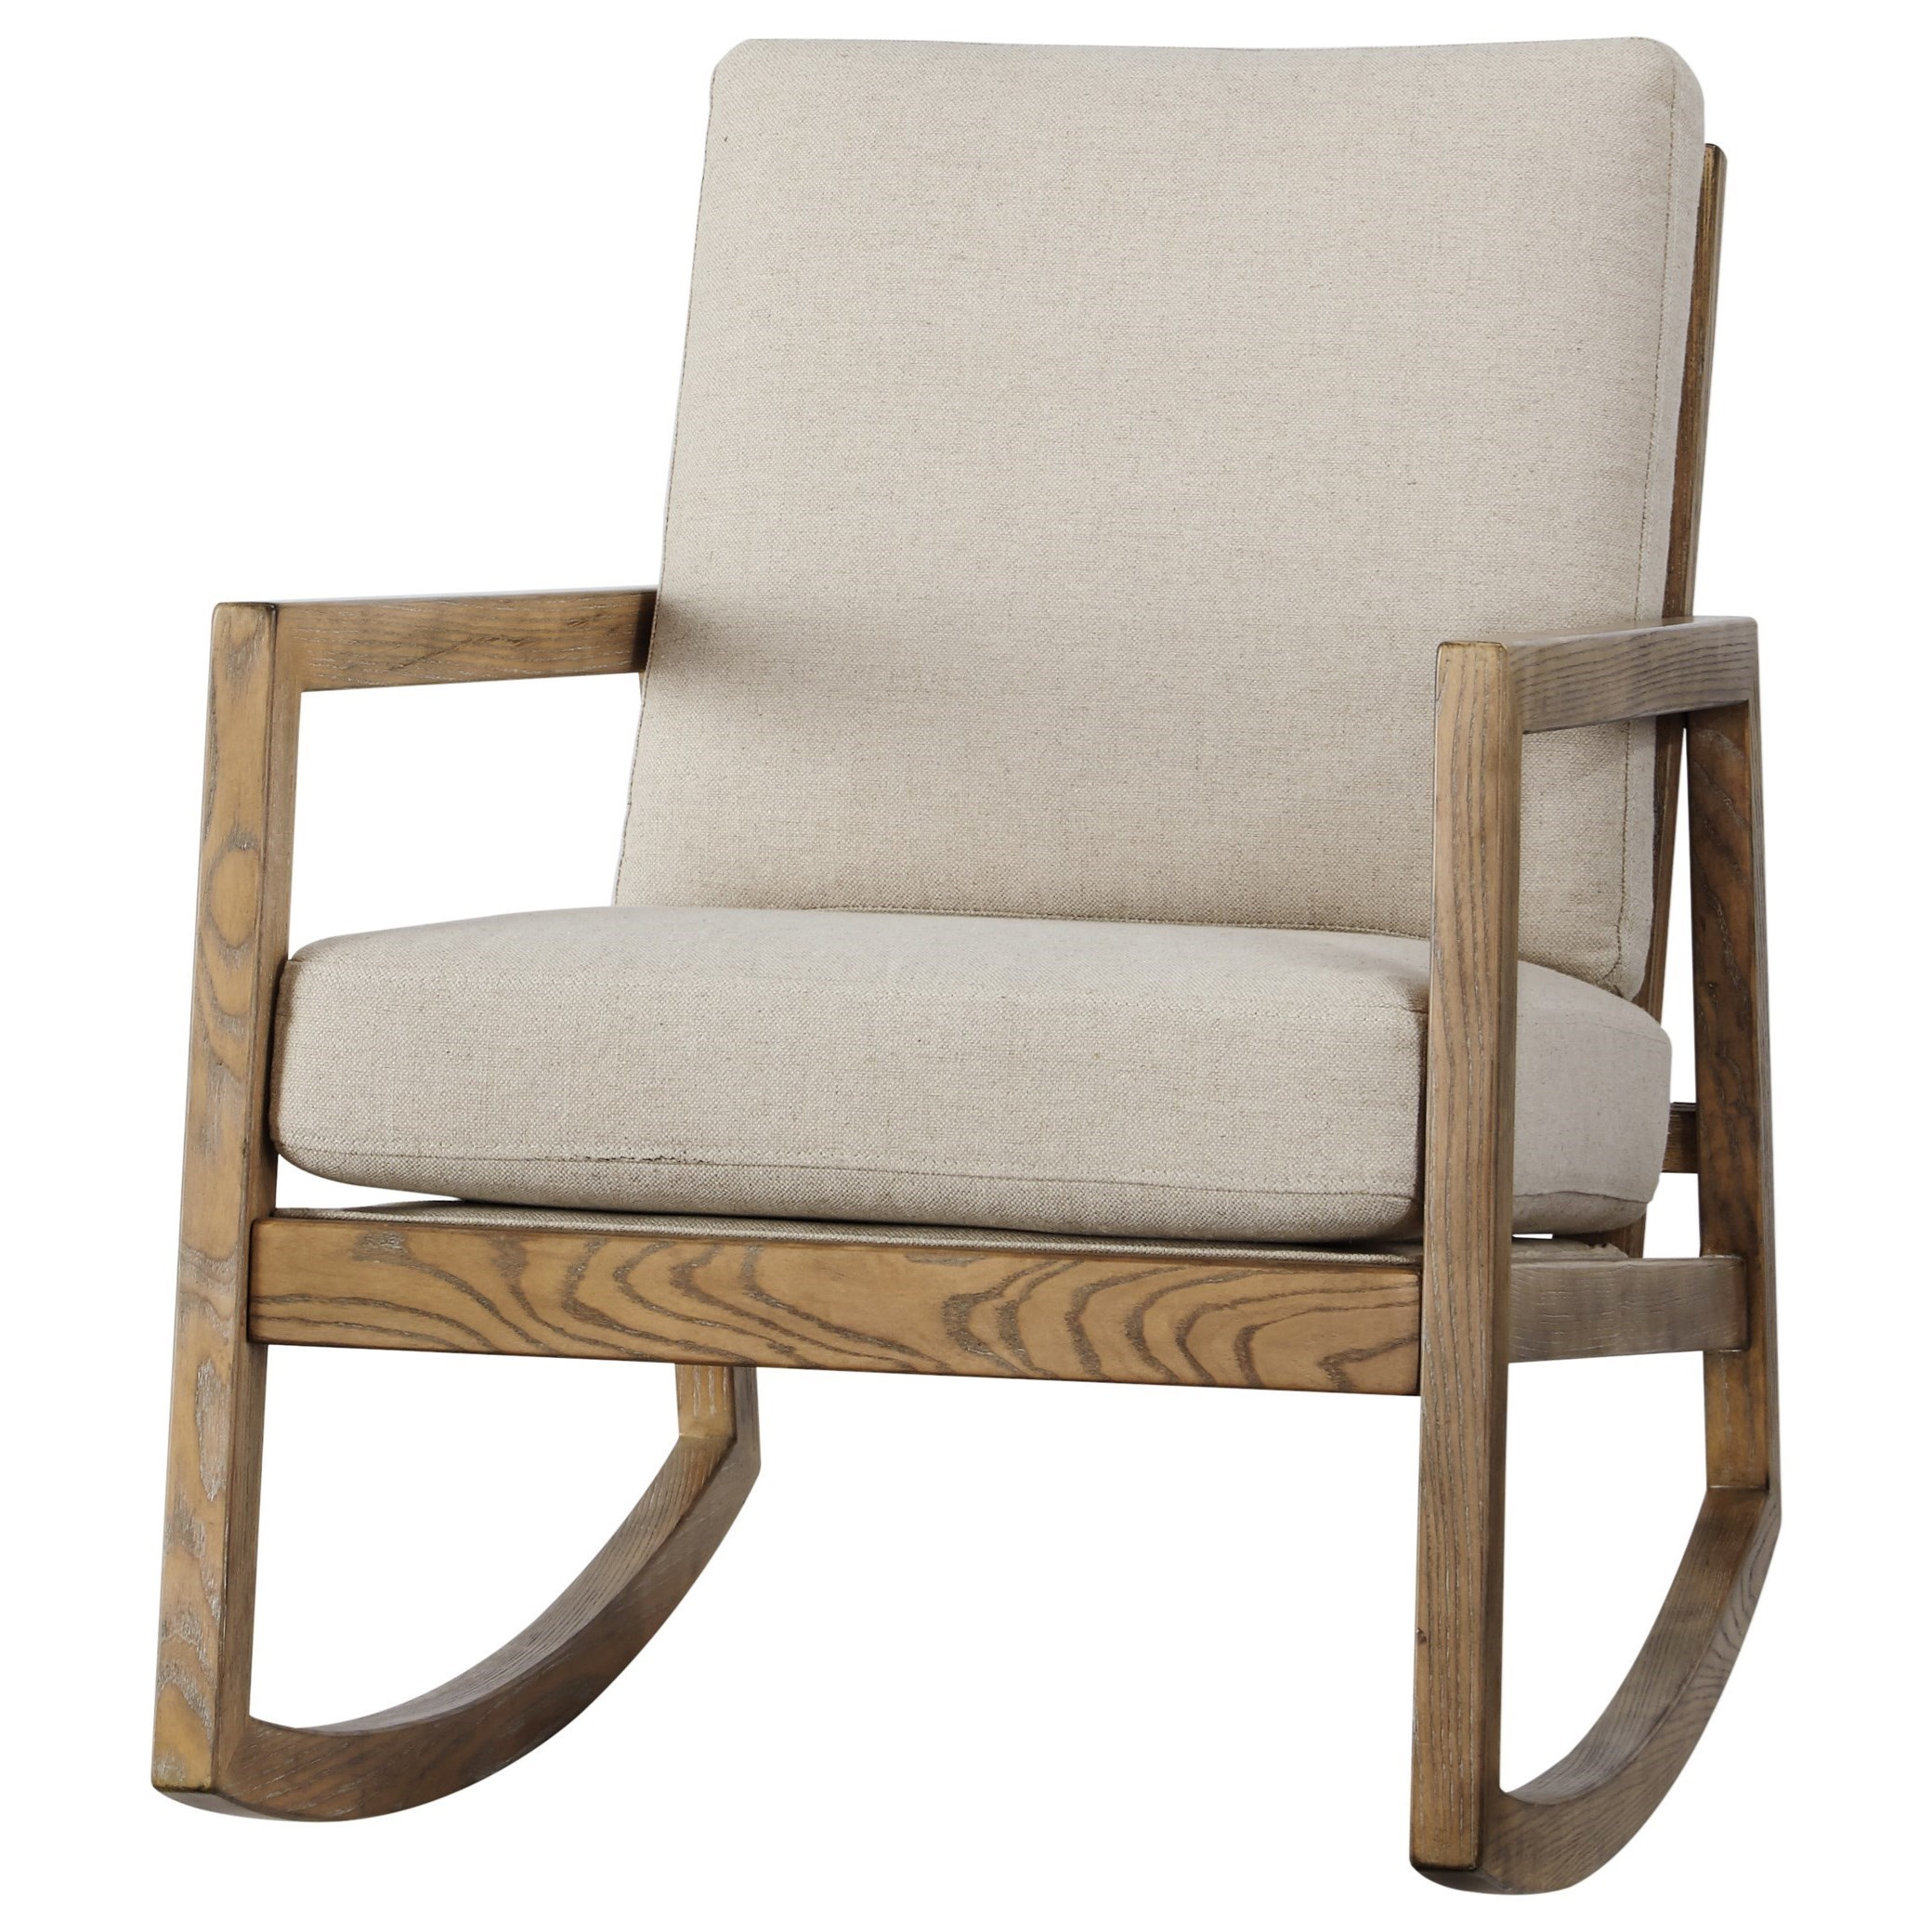 Upholstered Rocking Accent Chair with Exposed Wood Frame